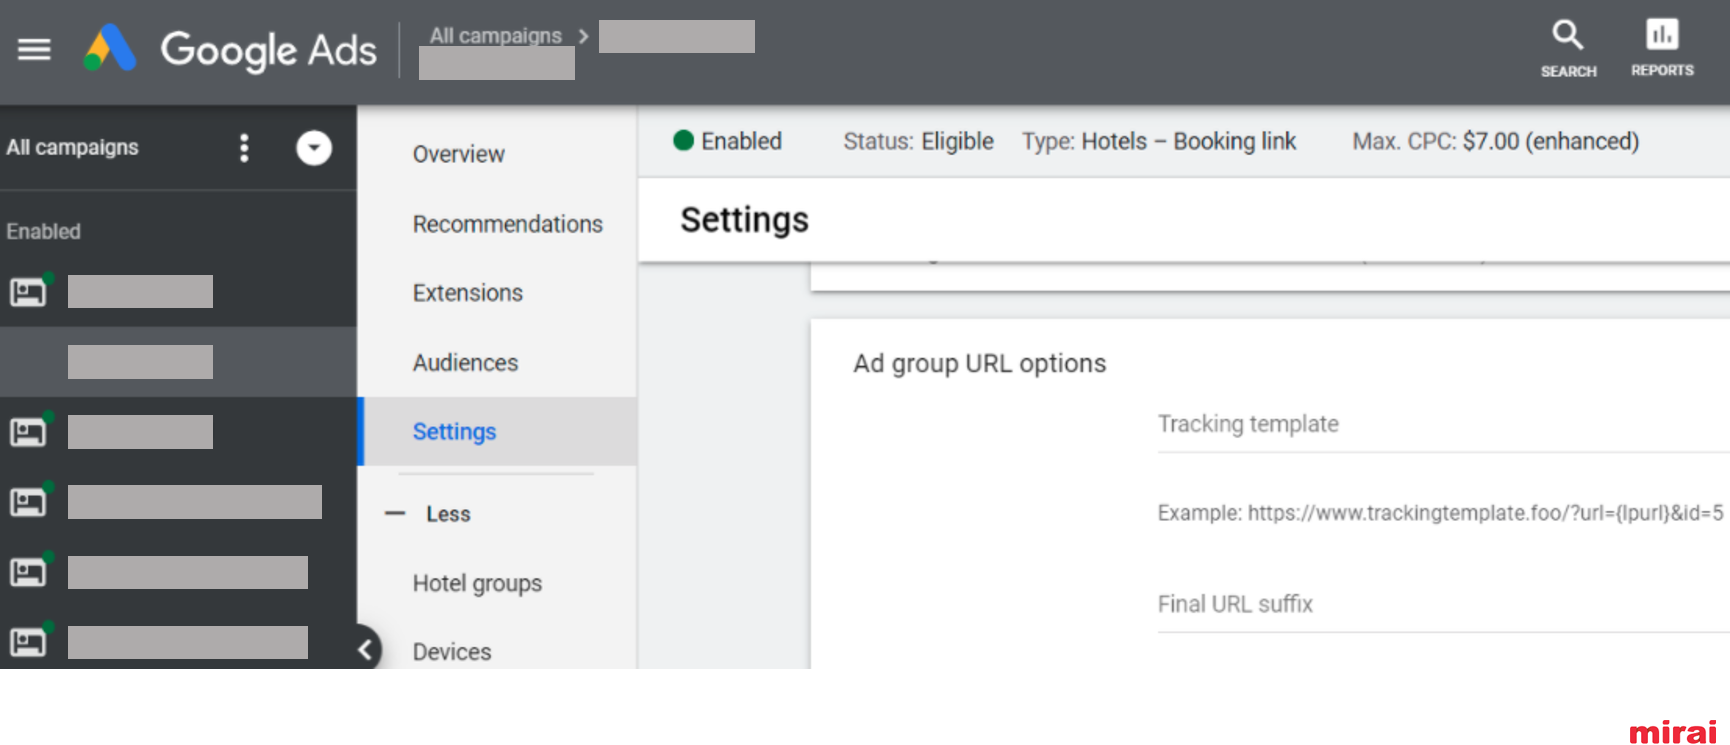 Monitor your performance in Google Hotel Ads - Mirai